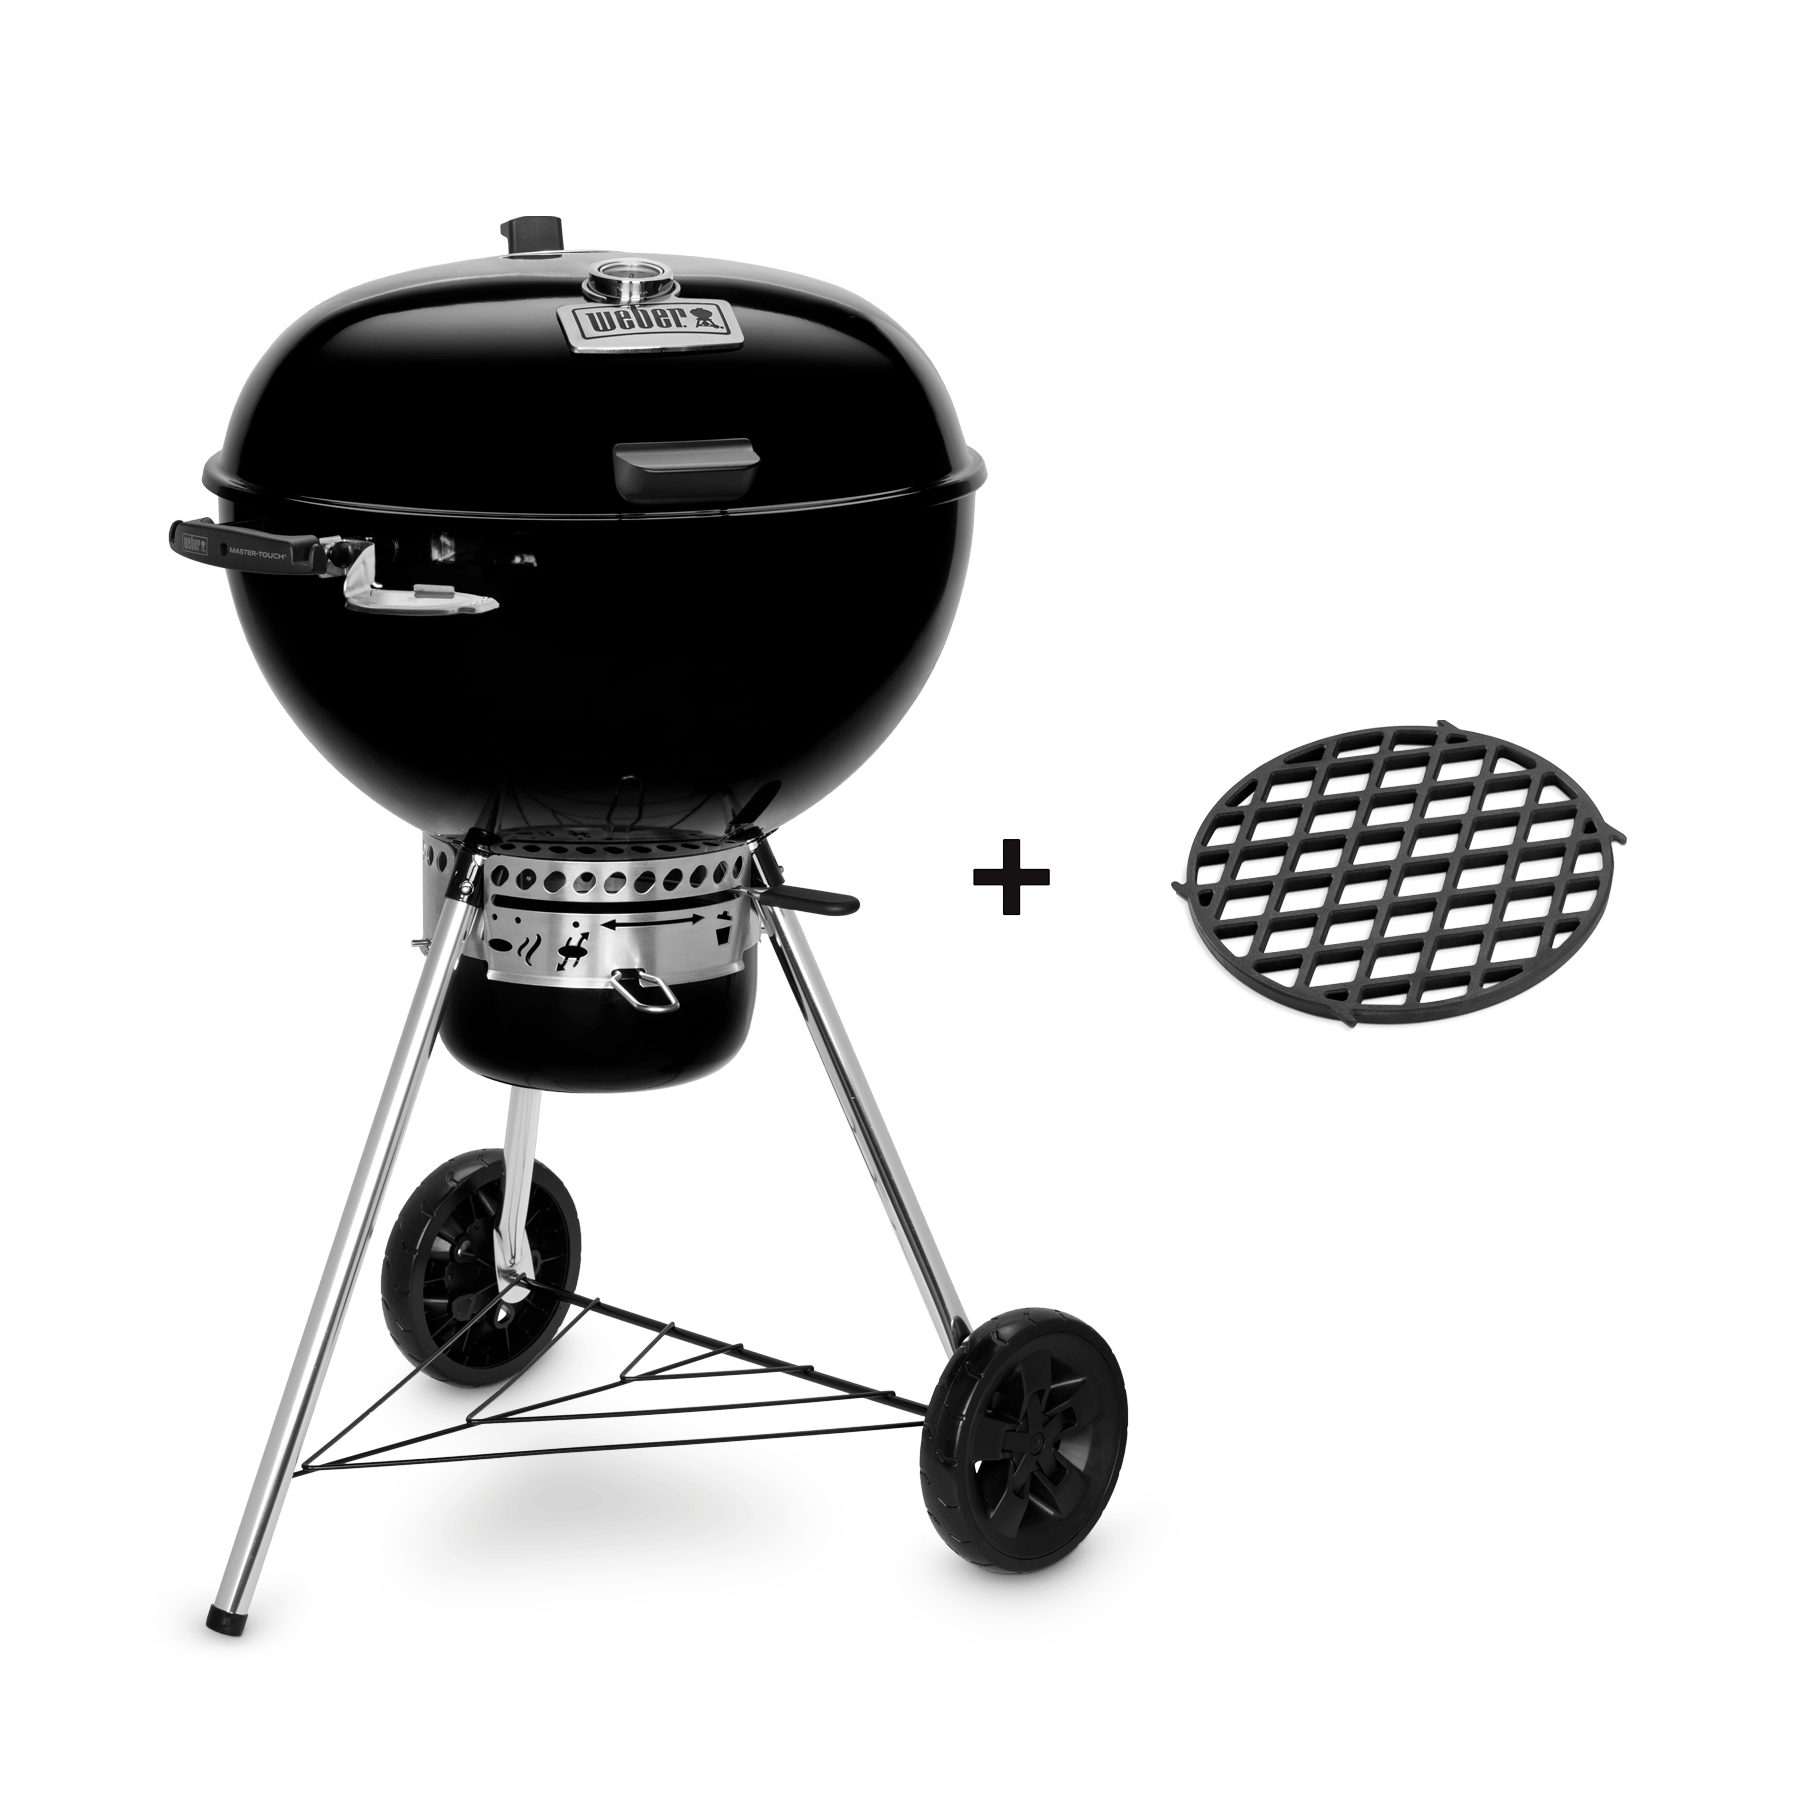 Weber Grill One Touch Master Touch Gbs Premium E 5775 Charcoal Barbecue 57 Cm Official